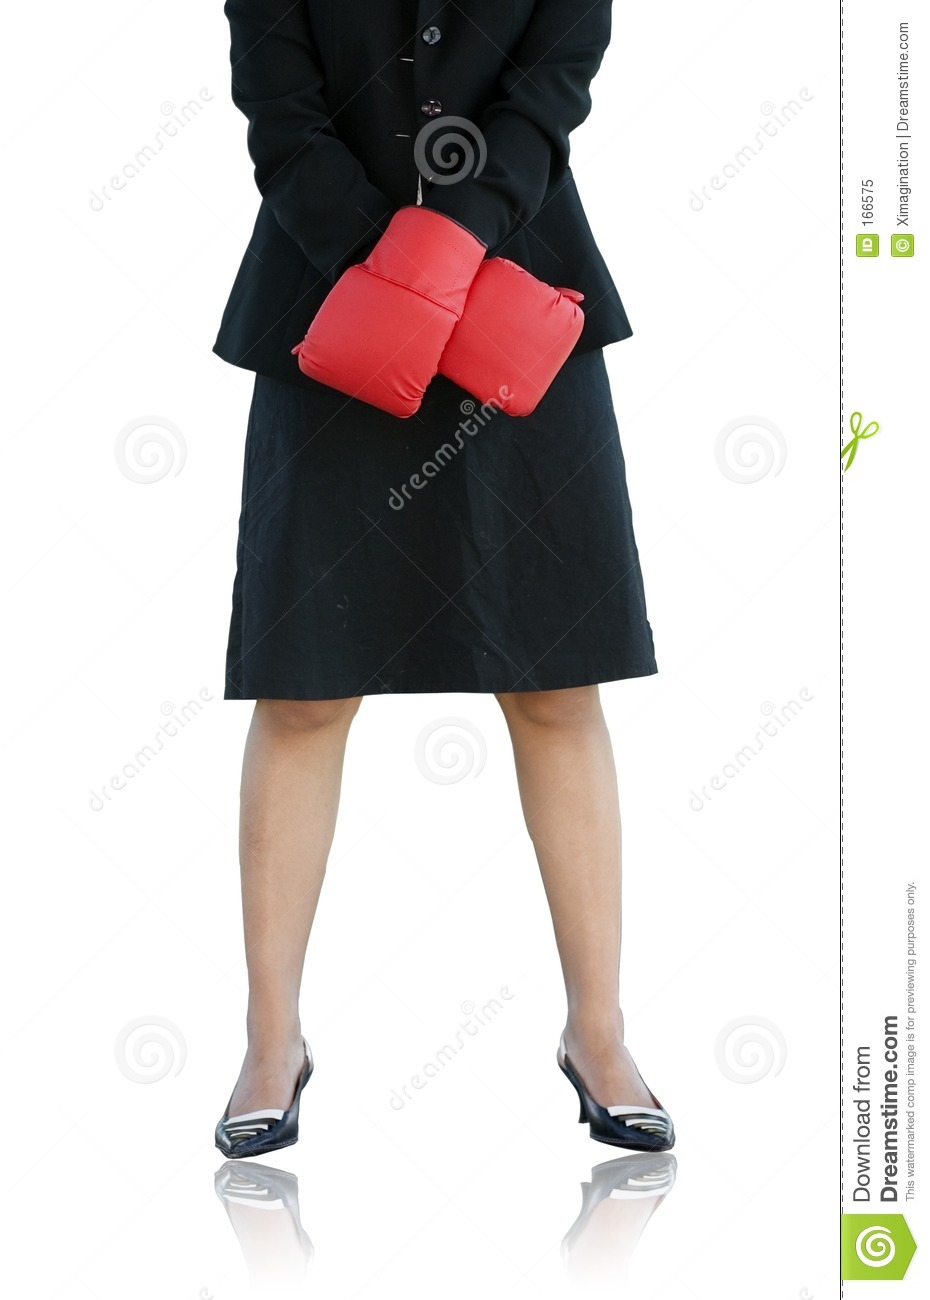 Businesswoman with boxing glove